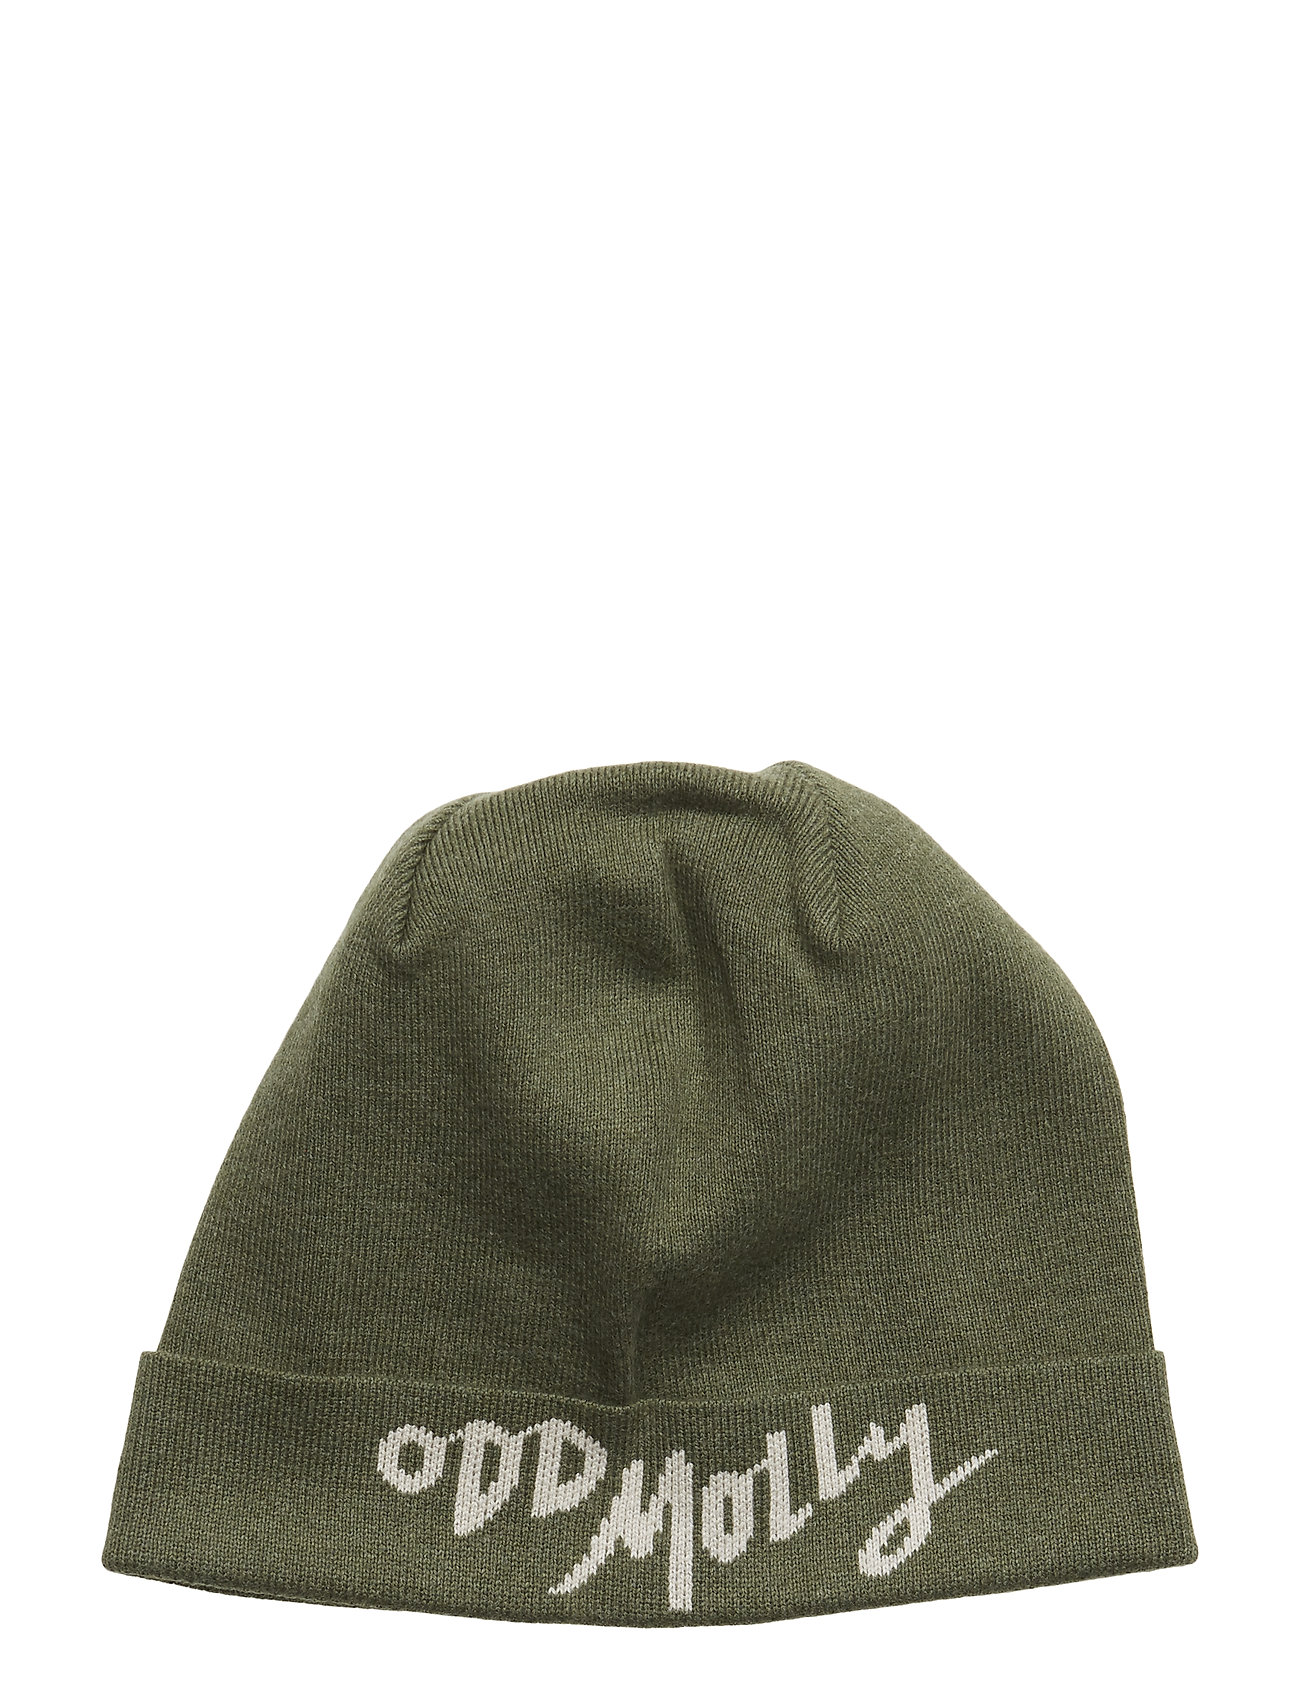 Image of Hold It Tight Beanie Hat Grøn ODD MOLLY (3071141989)